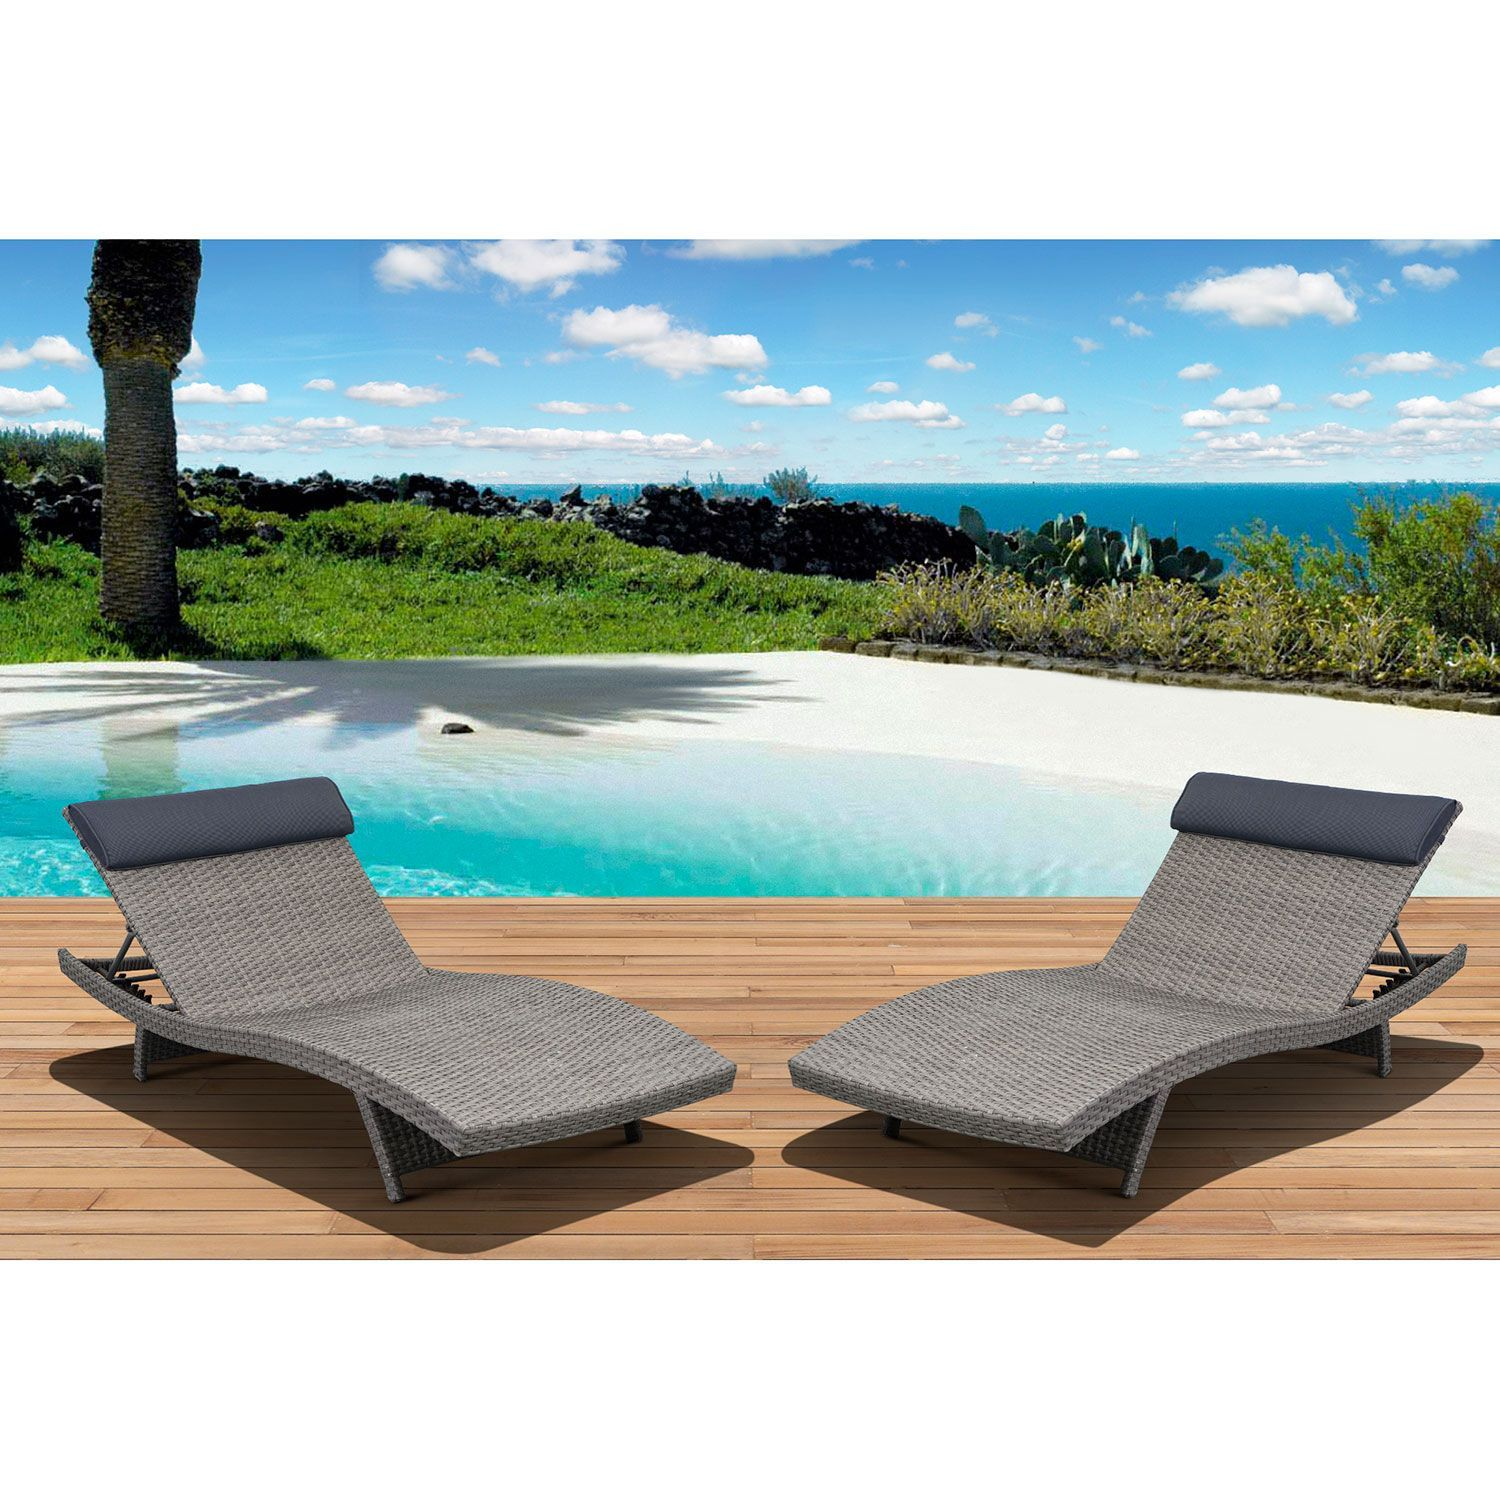 Cavalier Gray Synthetic Wicker Patio Lounge Chair With Gray Cushion (2 Pcs.)